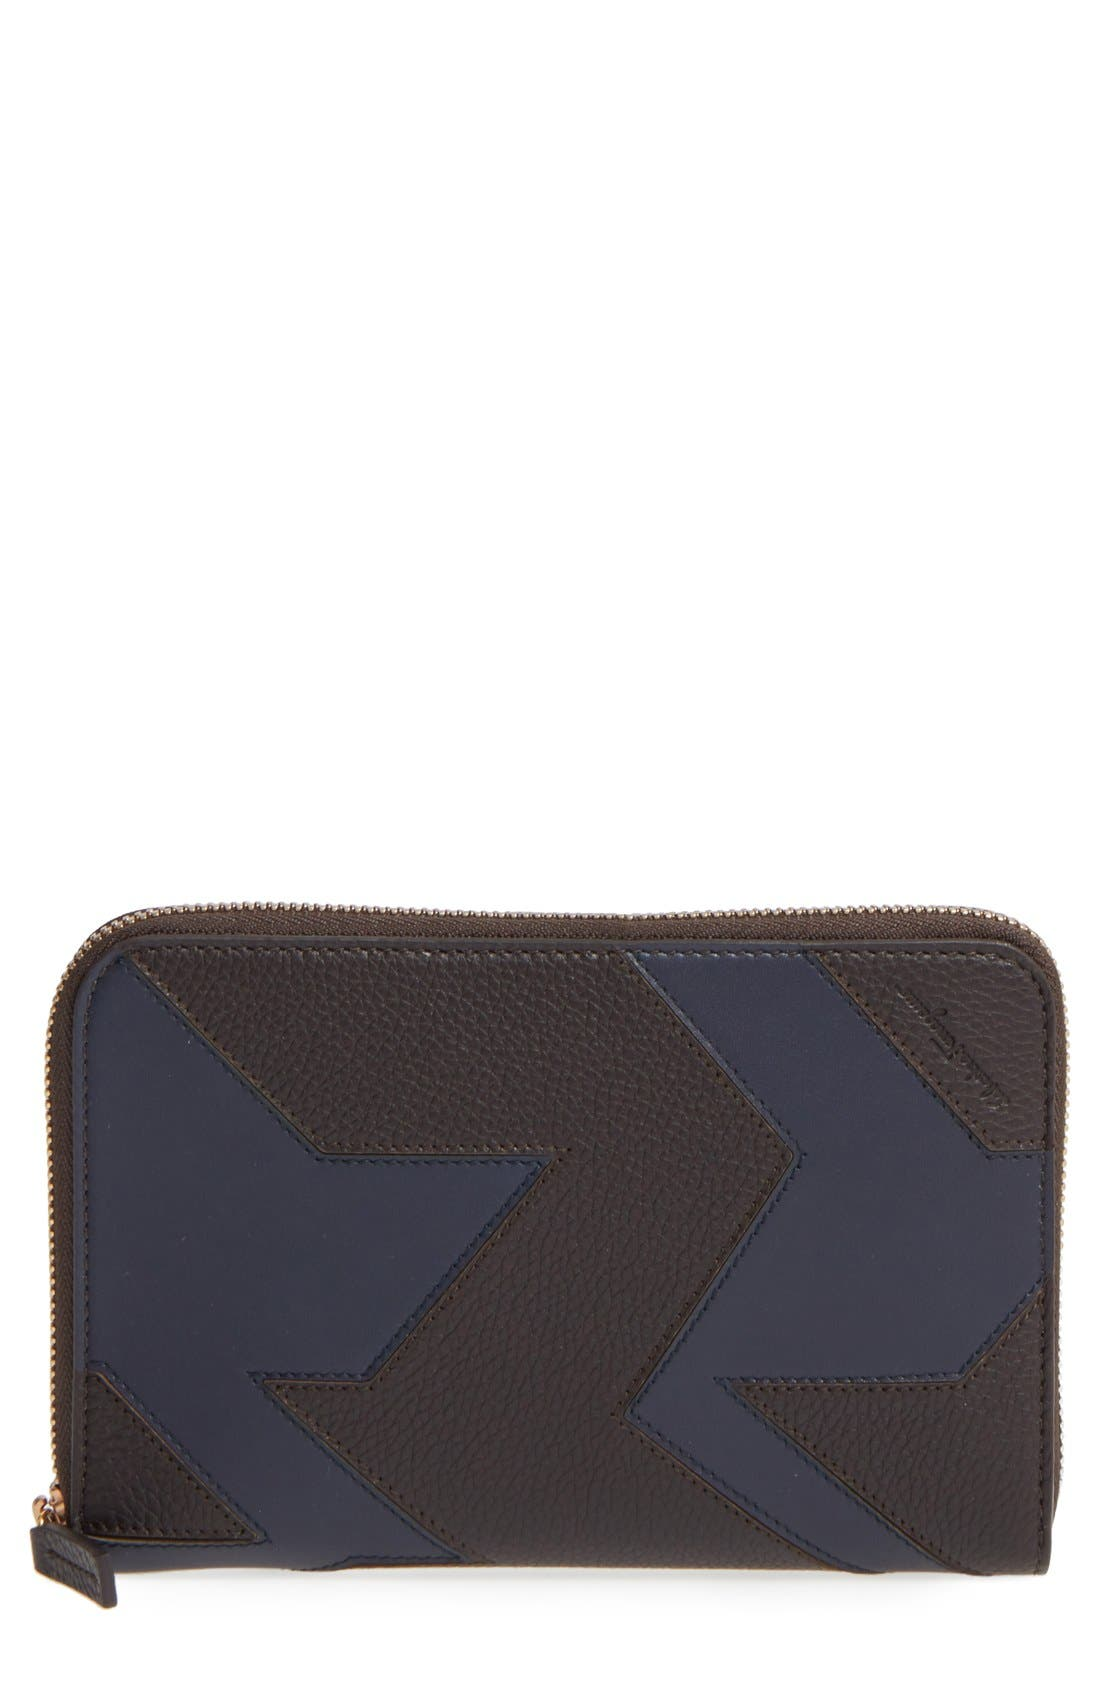 Salvatore Ferragamo Zip Wallet